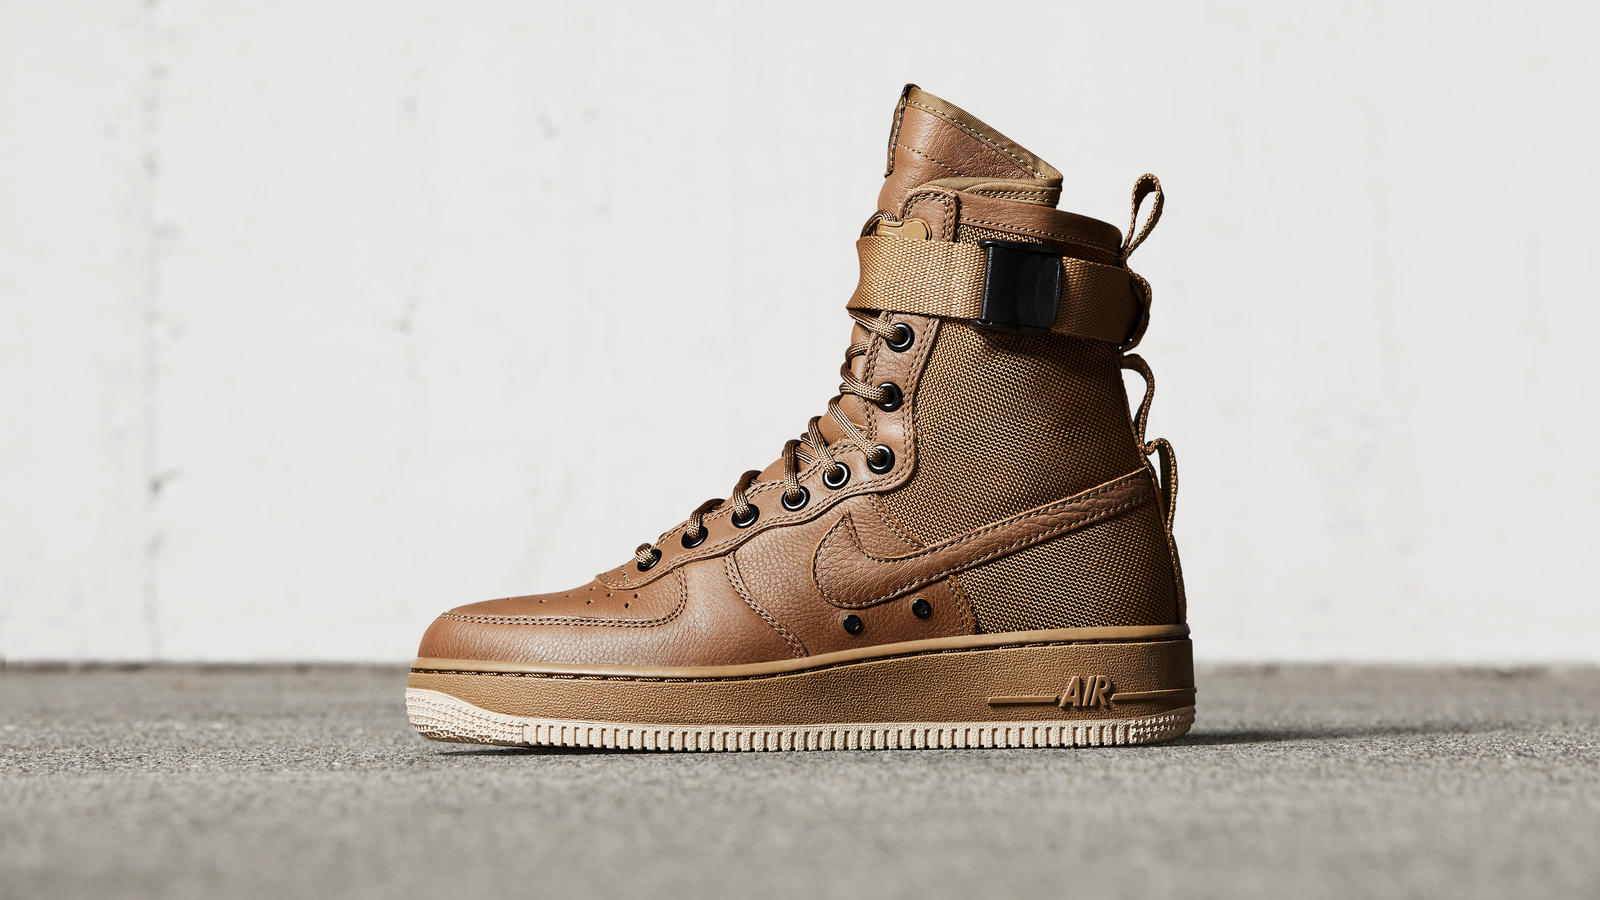 nike special field air force 1 b886e3619